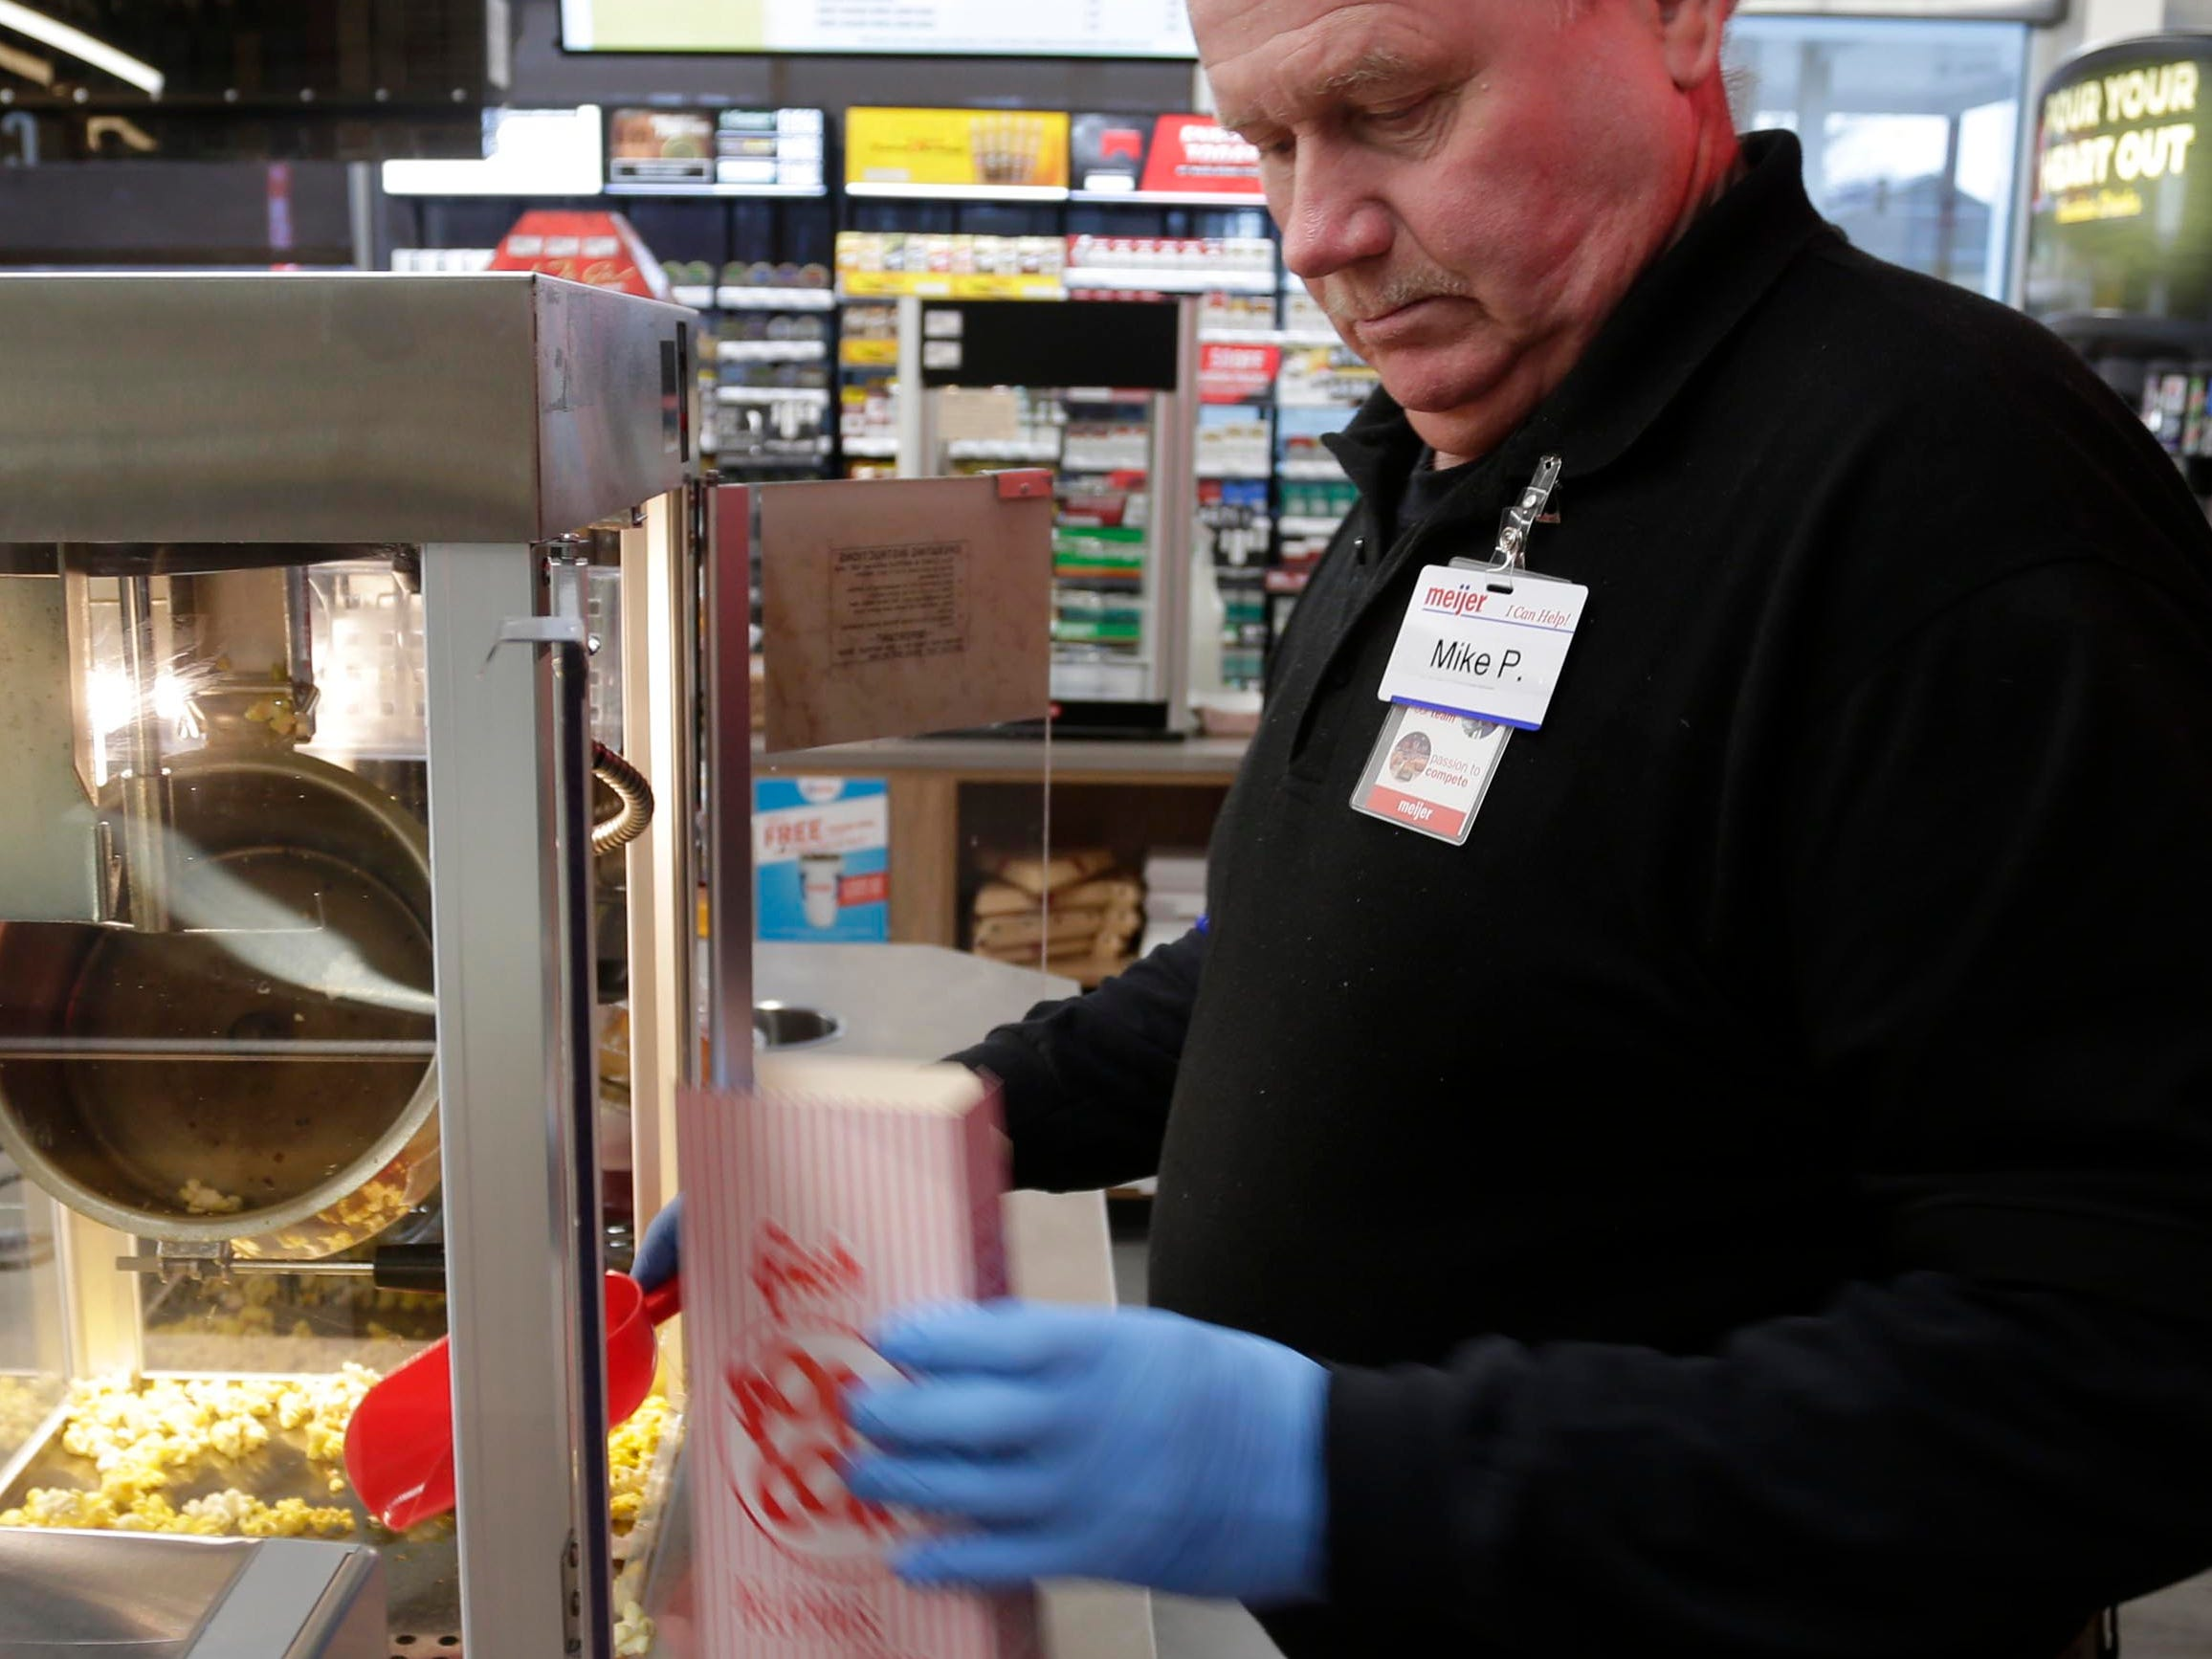 Meijer employee Mike Pellowski boxes up pop corn at the new Meijer gas station, Thursday, March 28, 2019, in Sheboygan, Wis.